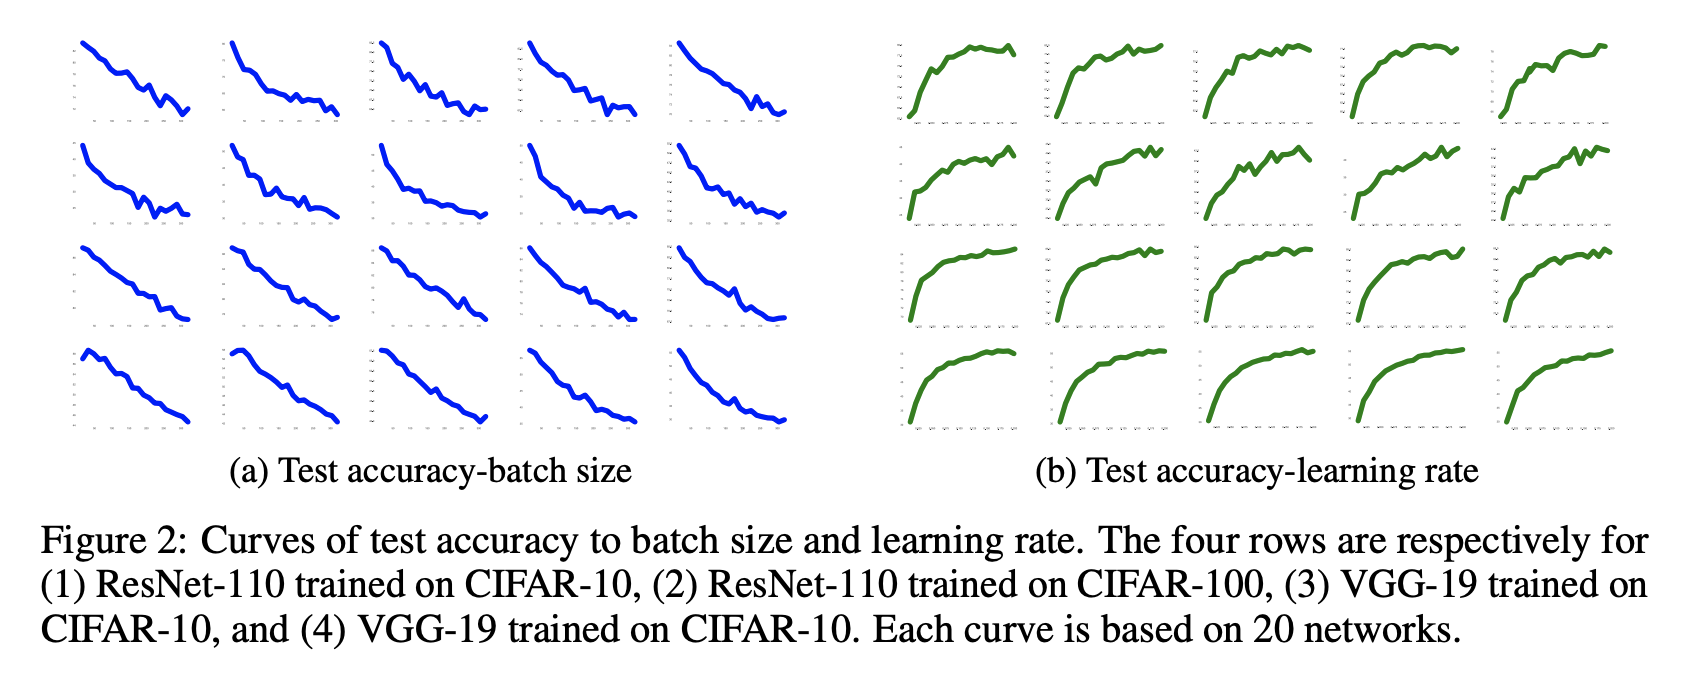 Generalization with respect to learning rate and batch size